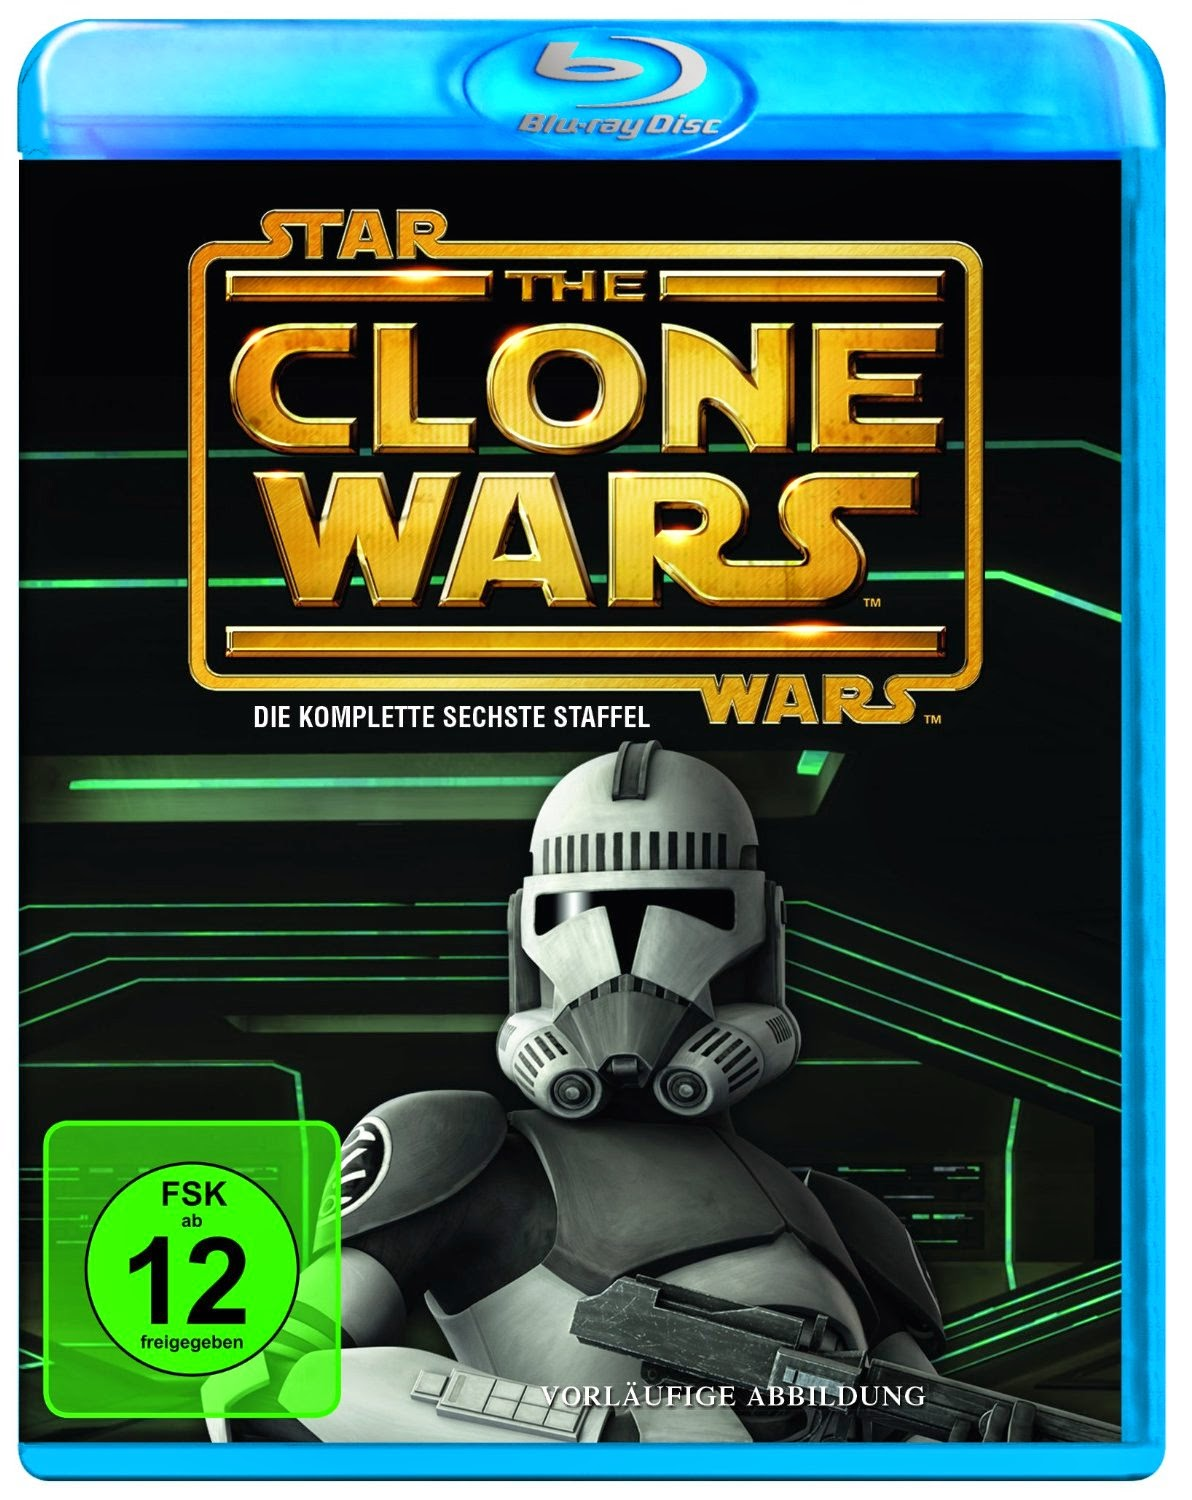 Clone Wars Lost Missions Dvd Wars The Lost Missions